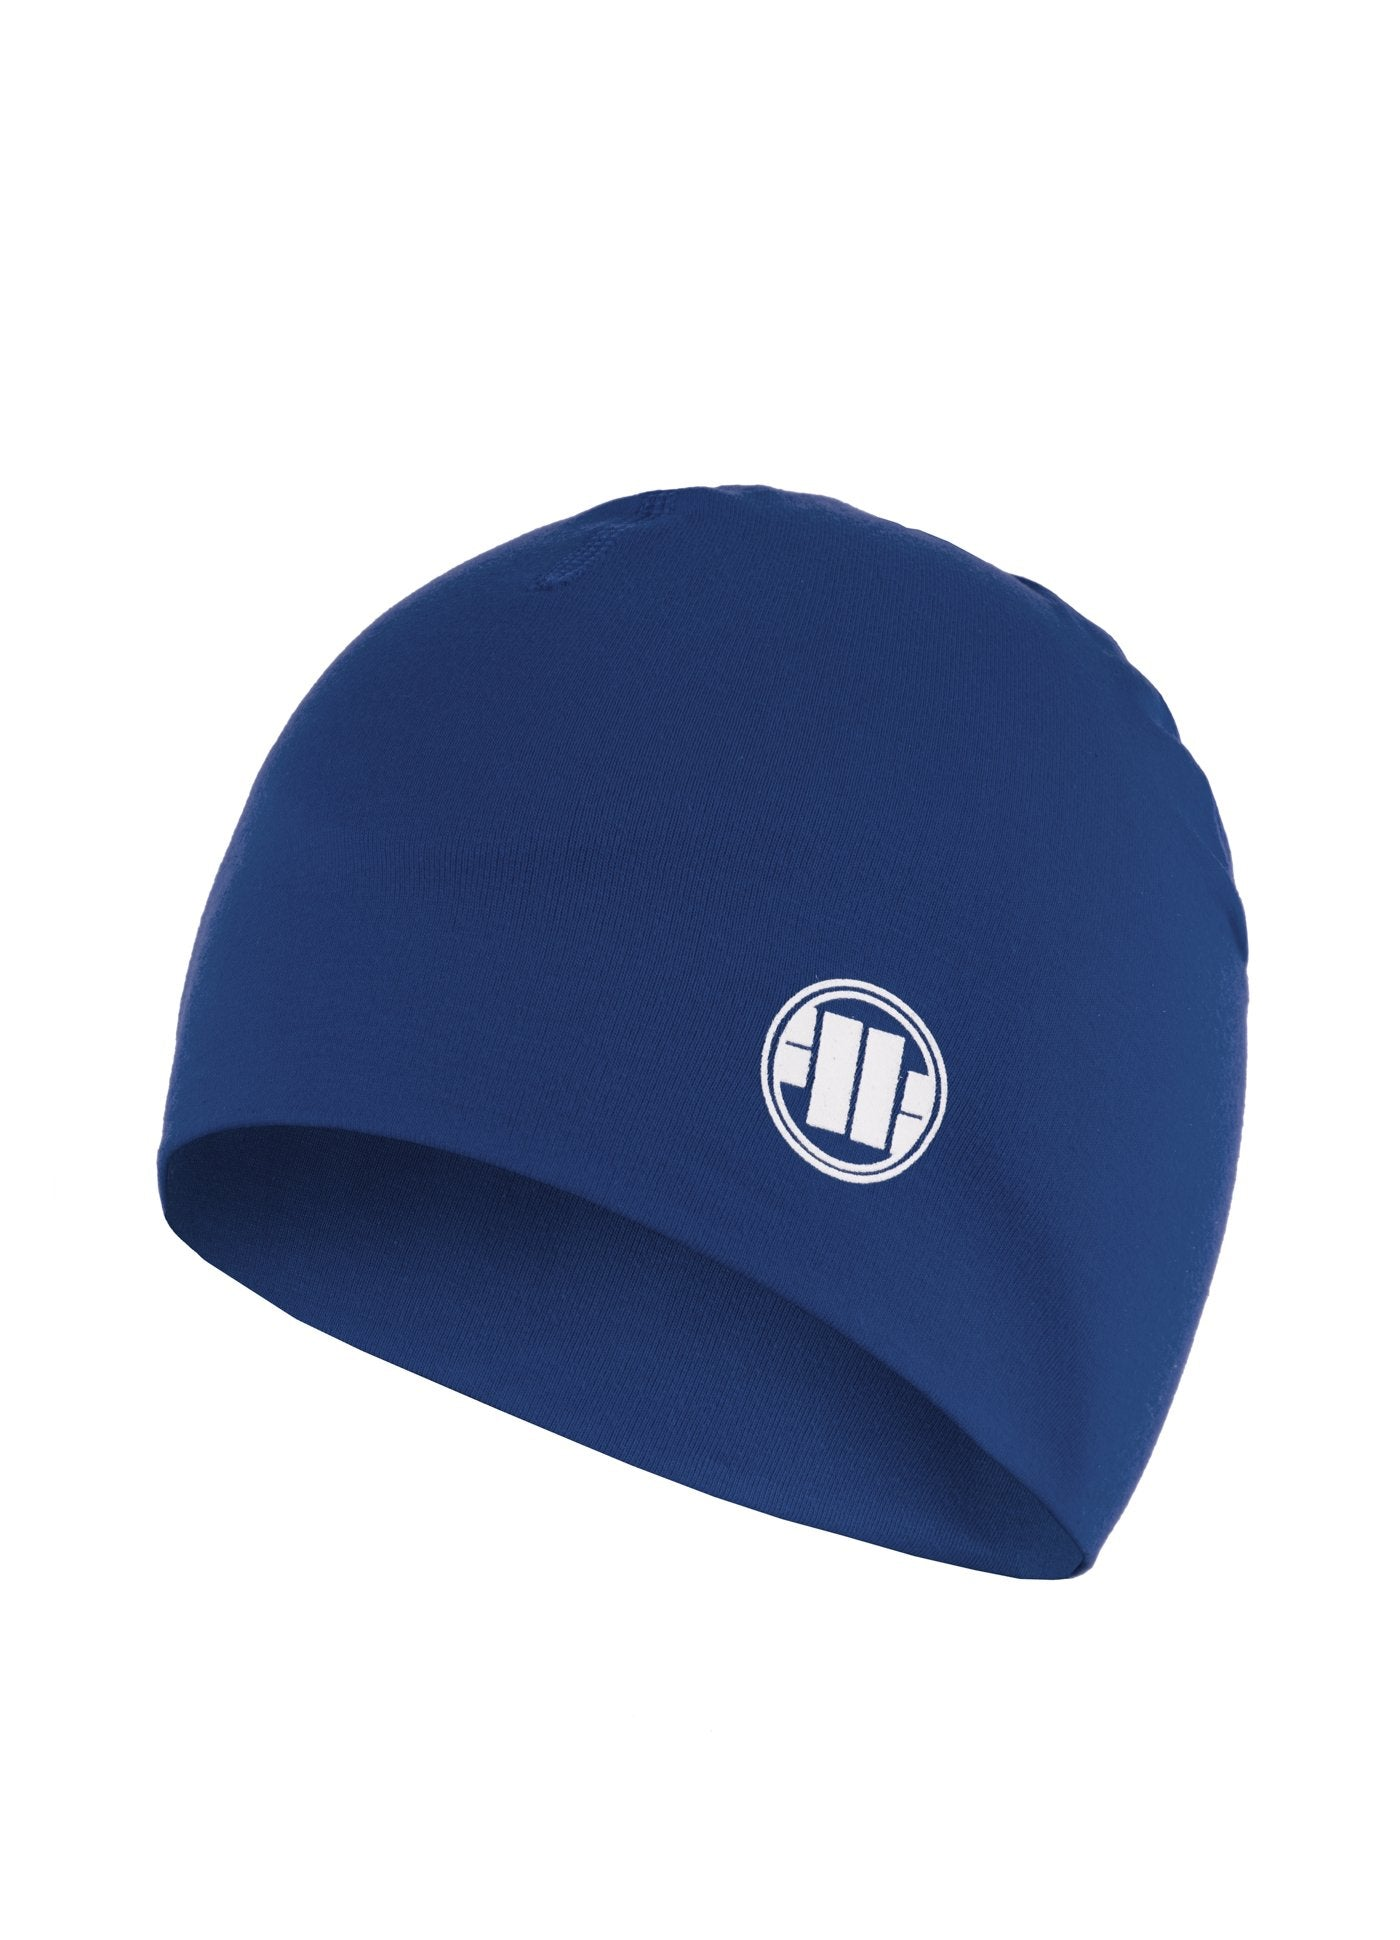 Compression Beanie SMALL LOGO Royal Blue - Pitbull West Coast U.S.A.